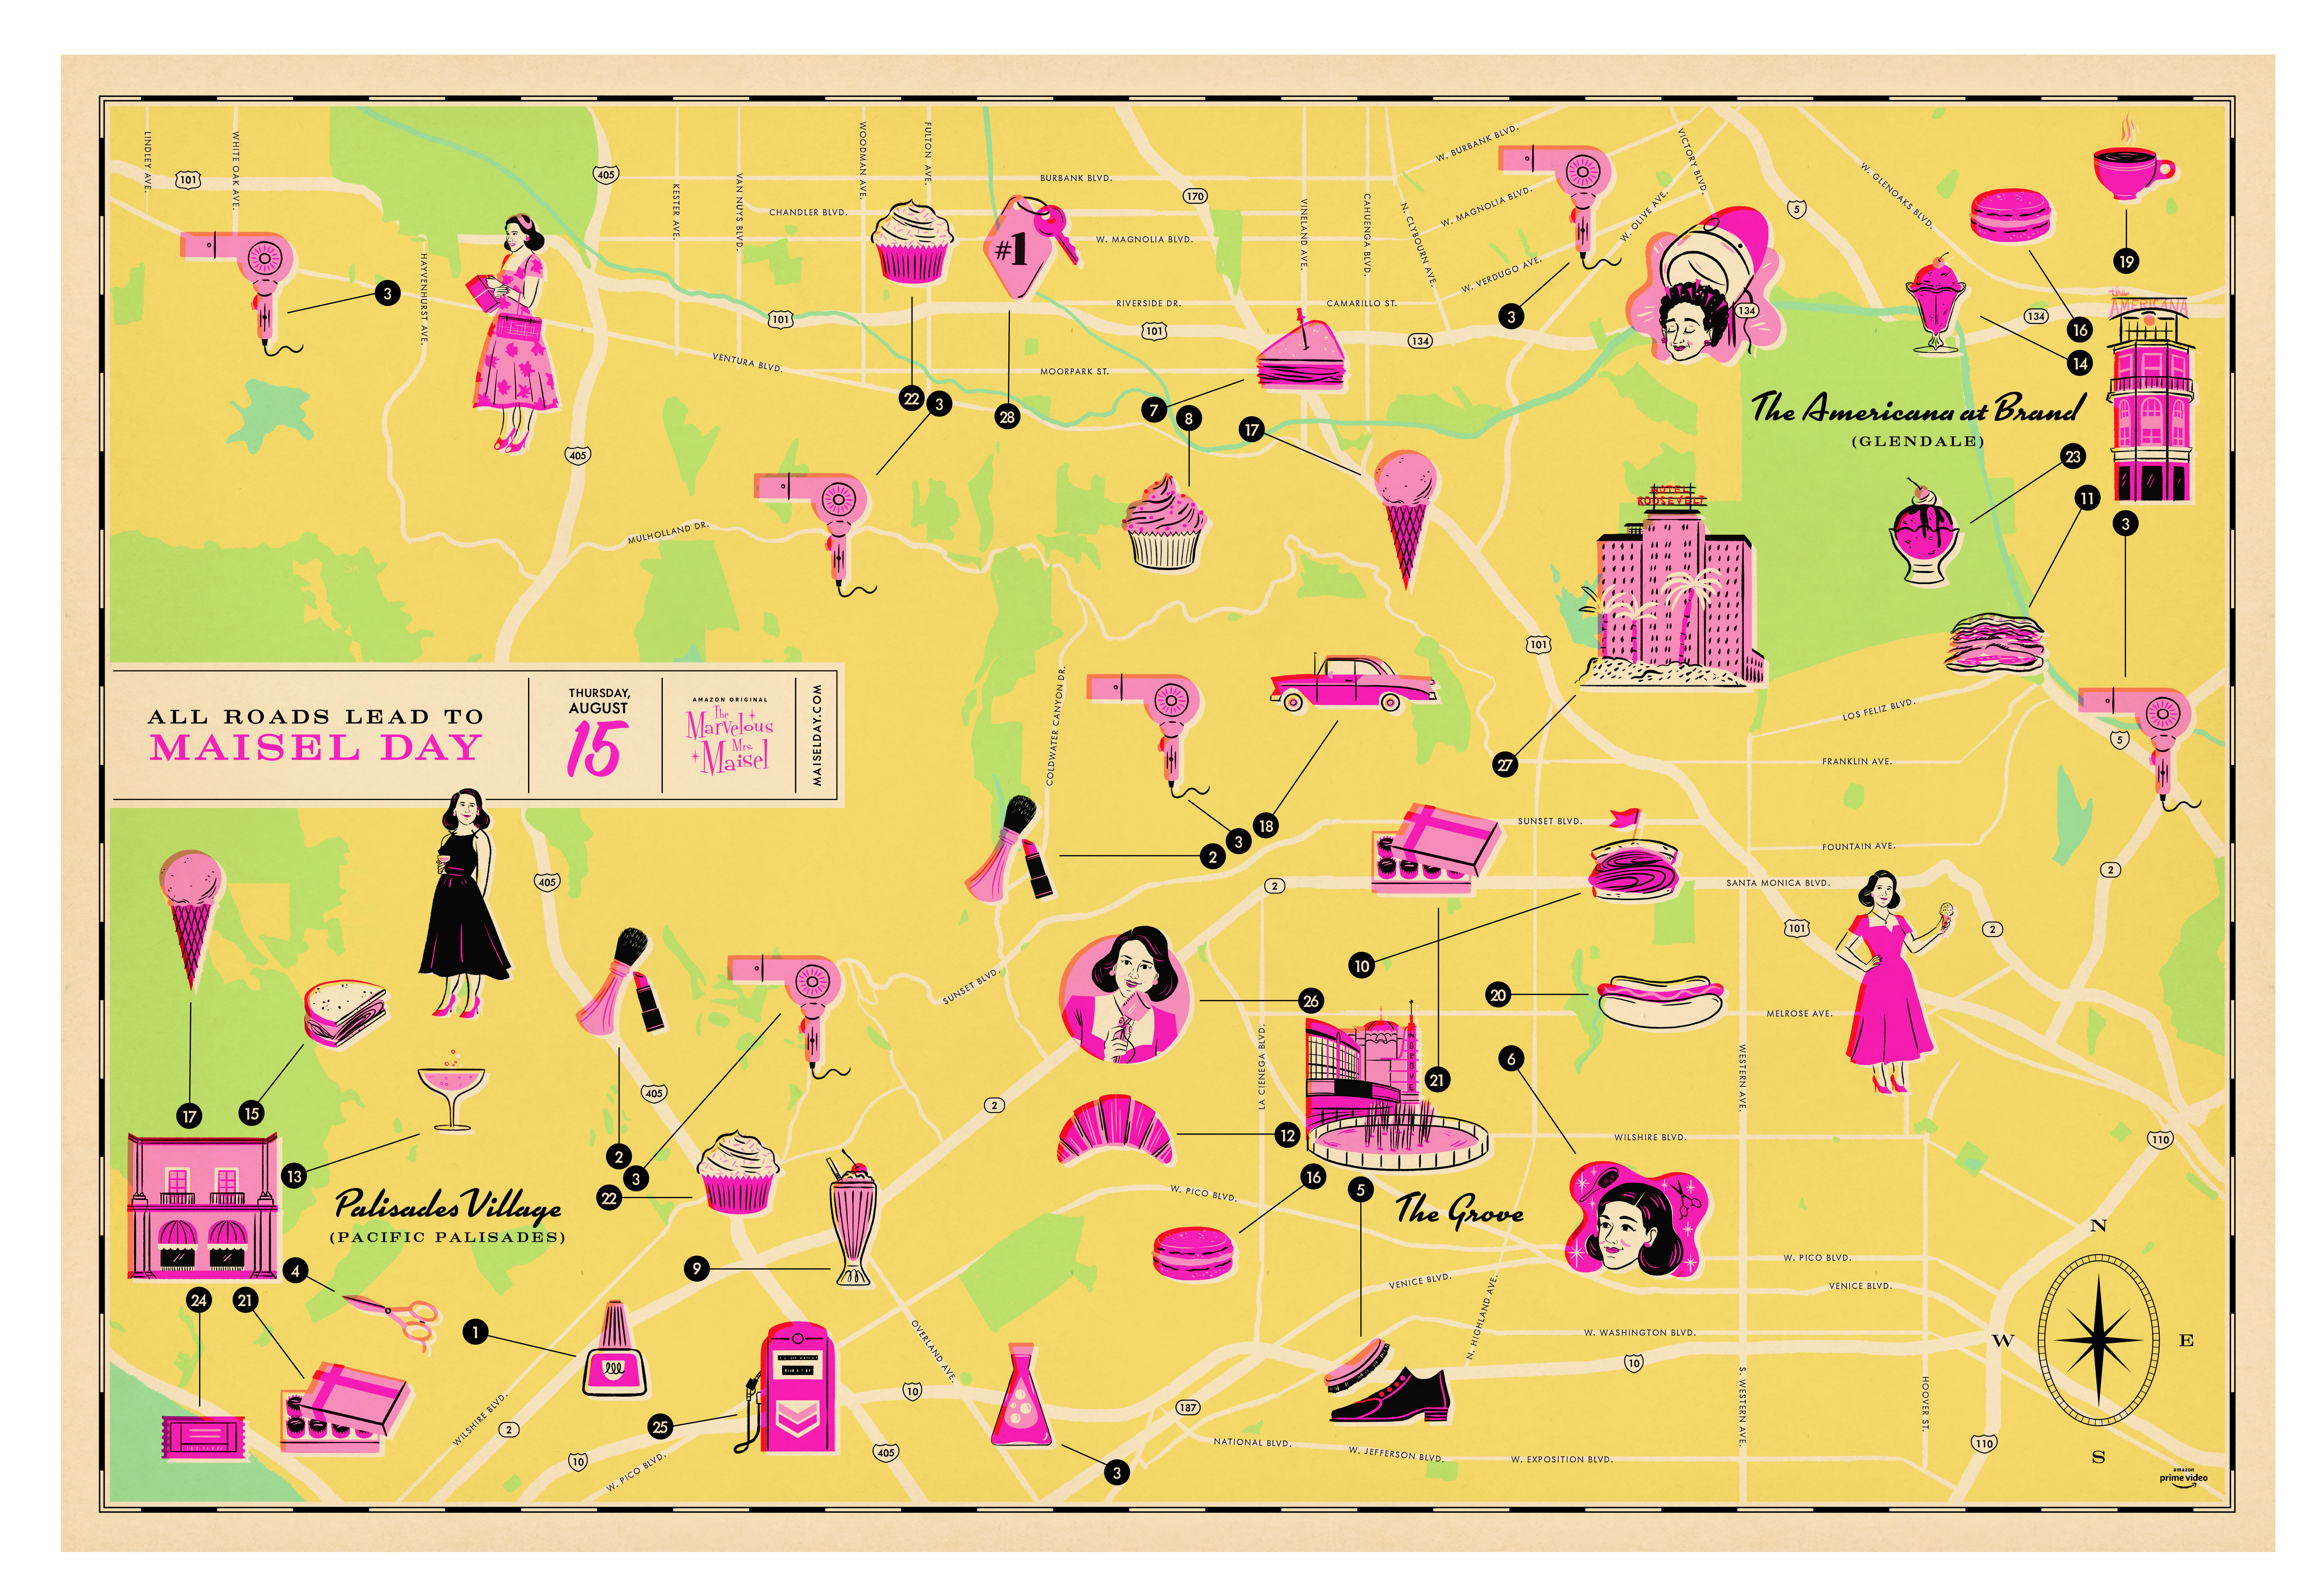 Maisel Day map